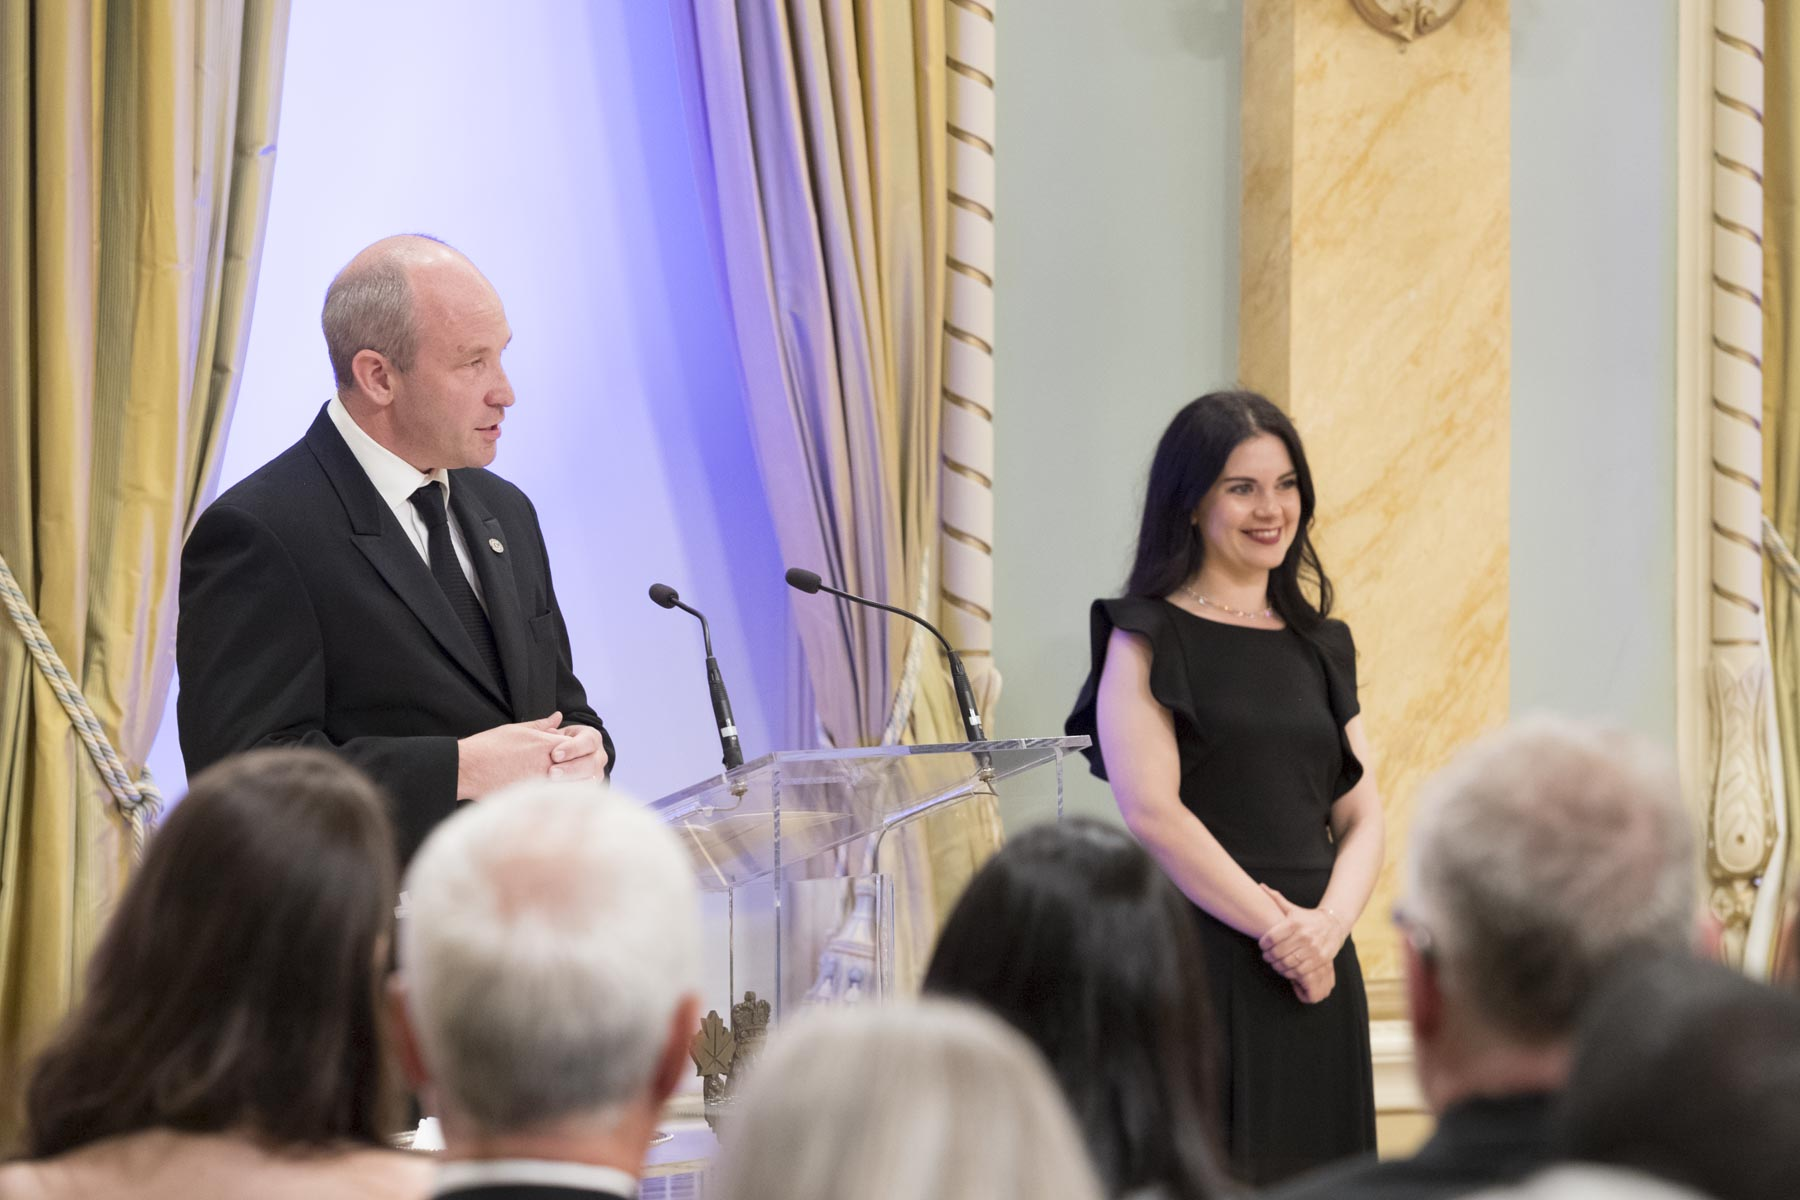 "The 2017 Michener Award was presented to Robyn Doolittle, from the Globe and Mail, for the series ""Unfounded"". In a massive investigation involving more than 250 Freedom of Information requests, Ms. Doolittle tracked dismissed, or ""unfounded,"" sexual assault cases handled by Canadian police. The result was this 2017 series—accompanied by the voices of experts and sexual assault complainants—which showed police were dismissing one in five such complaints. It also showed unfounded rates varied from jurisdiction to jurisdiction, raising questions about equity of access to justice. A follow up survey revealed thousands of these cases had been misclassified and that one in three legitimate sexual assault reports had been wrongfully dismissed. The series spurred the federal government to pledge better police oversight, training and policies, along with $100 million to combat gender-based violence. Statistics Canada promised to resume collecting and publishing unfounded rates. In all, some 37 000 sexual assault cases were reviewed and more than 400 unfounded cases were reopened."